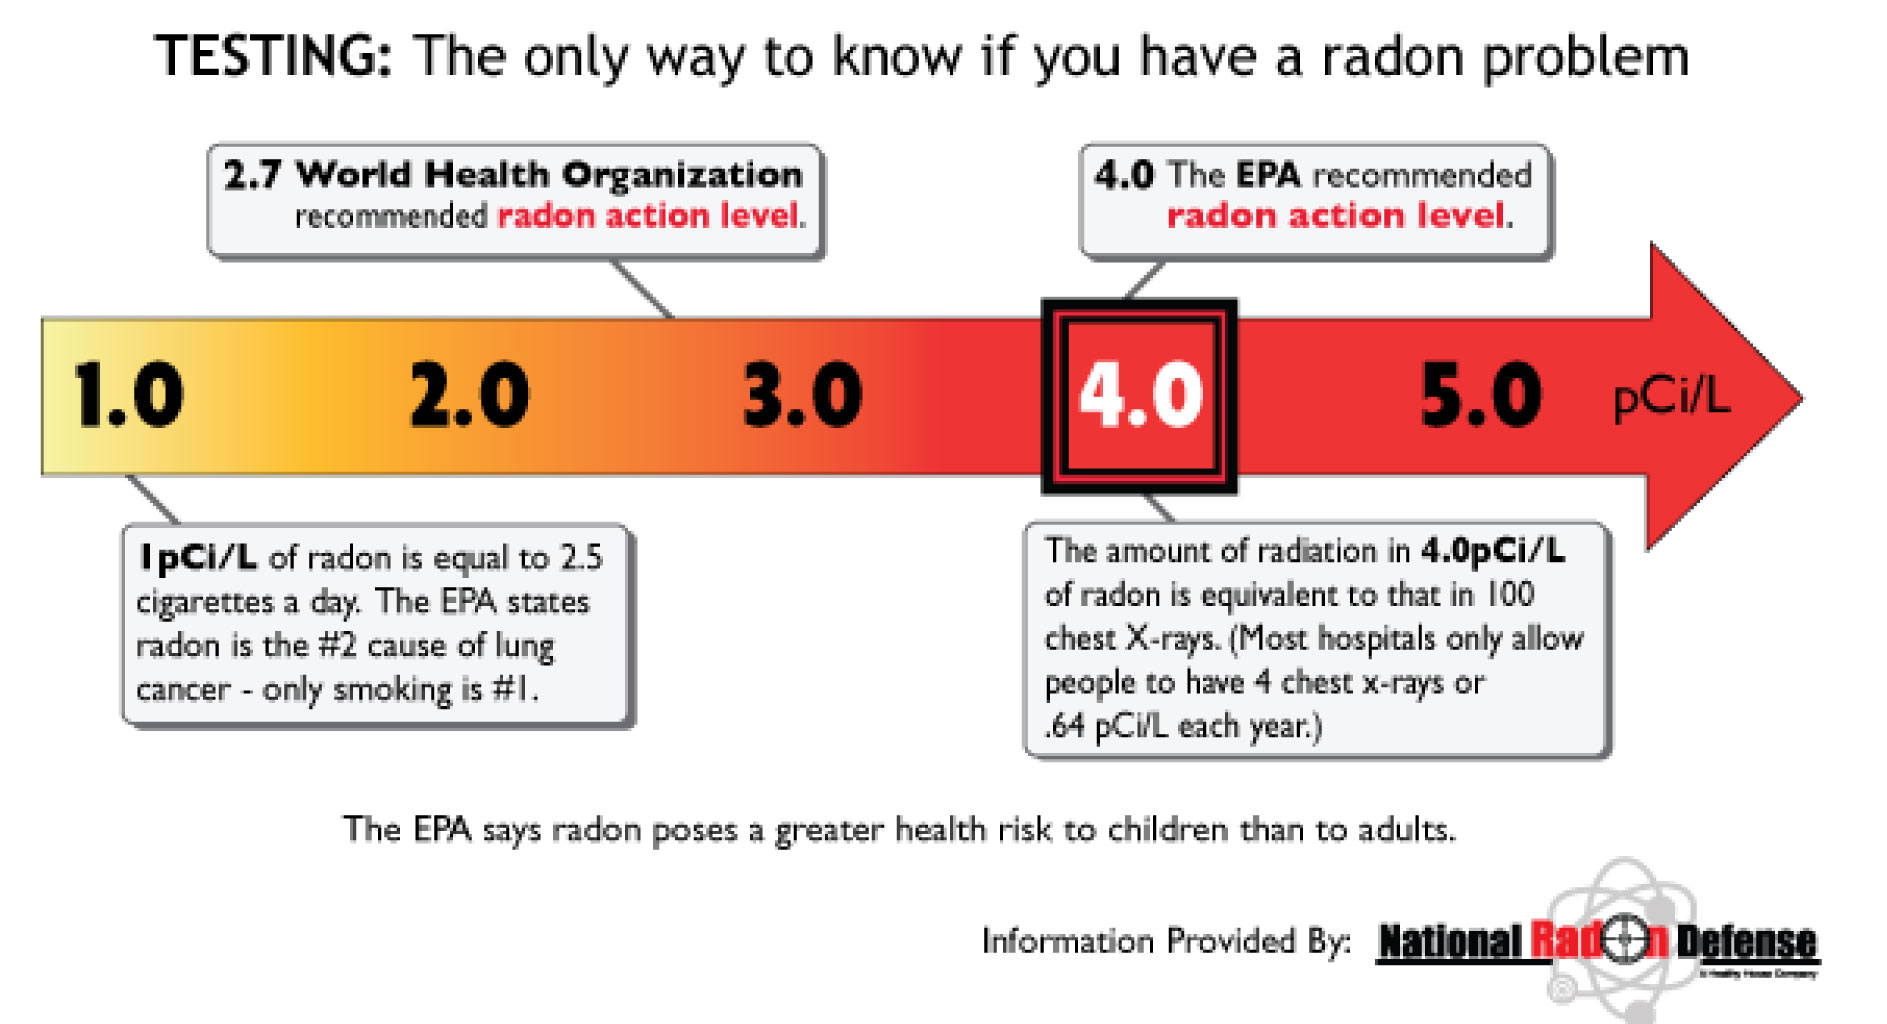 Facts Concerning Radon testing